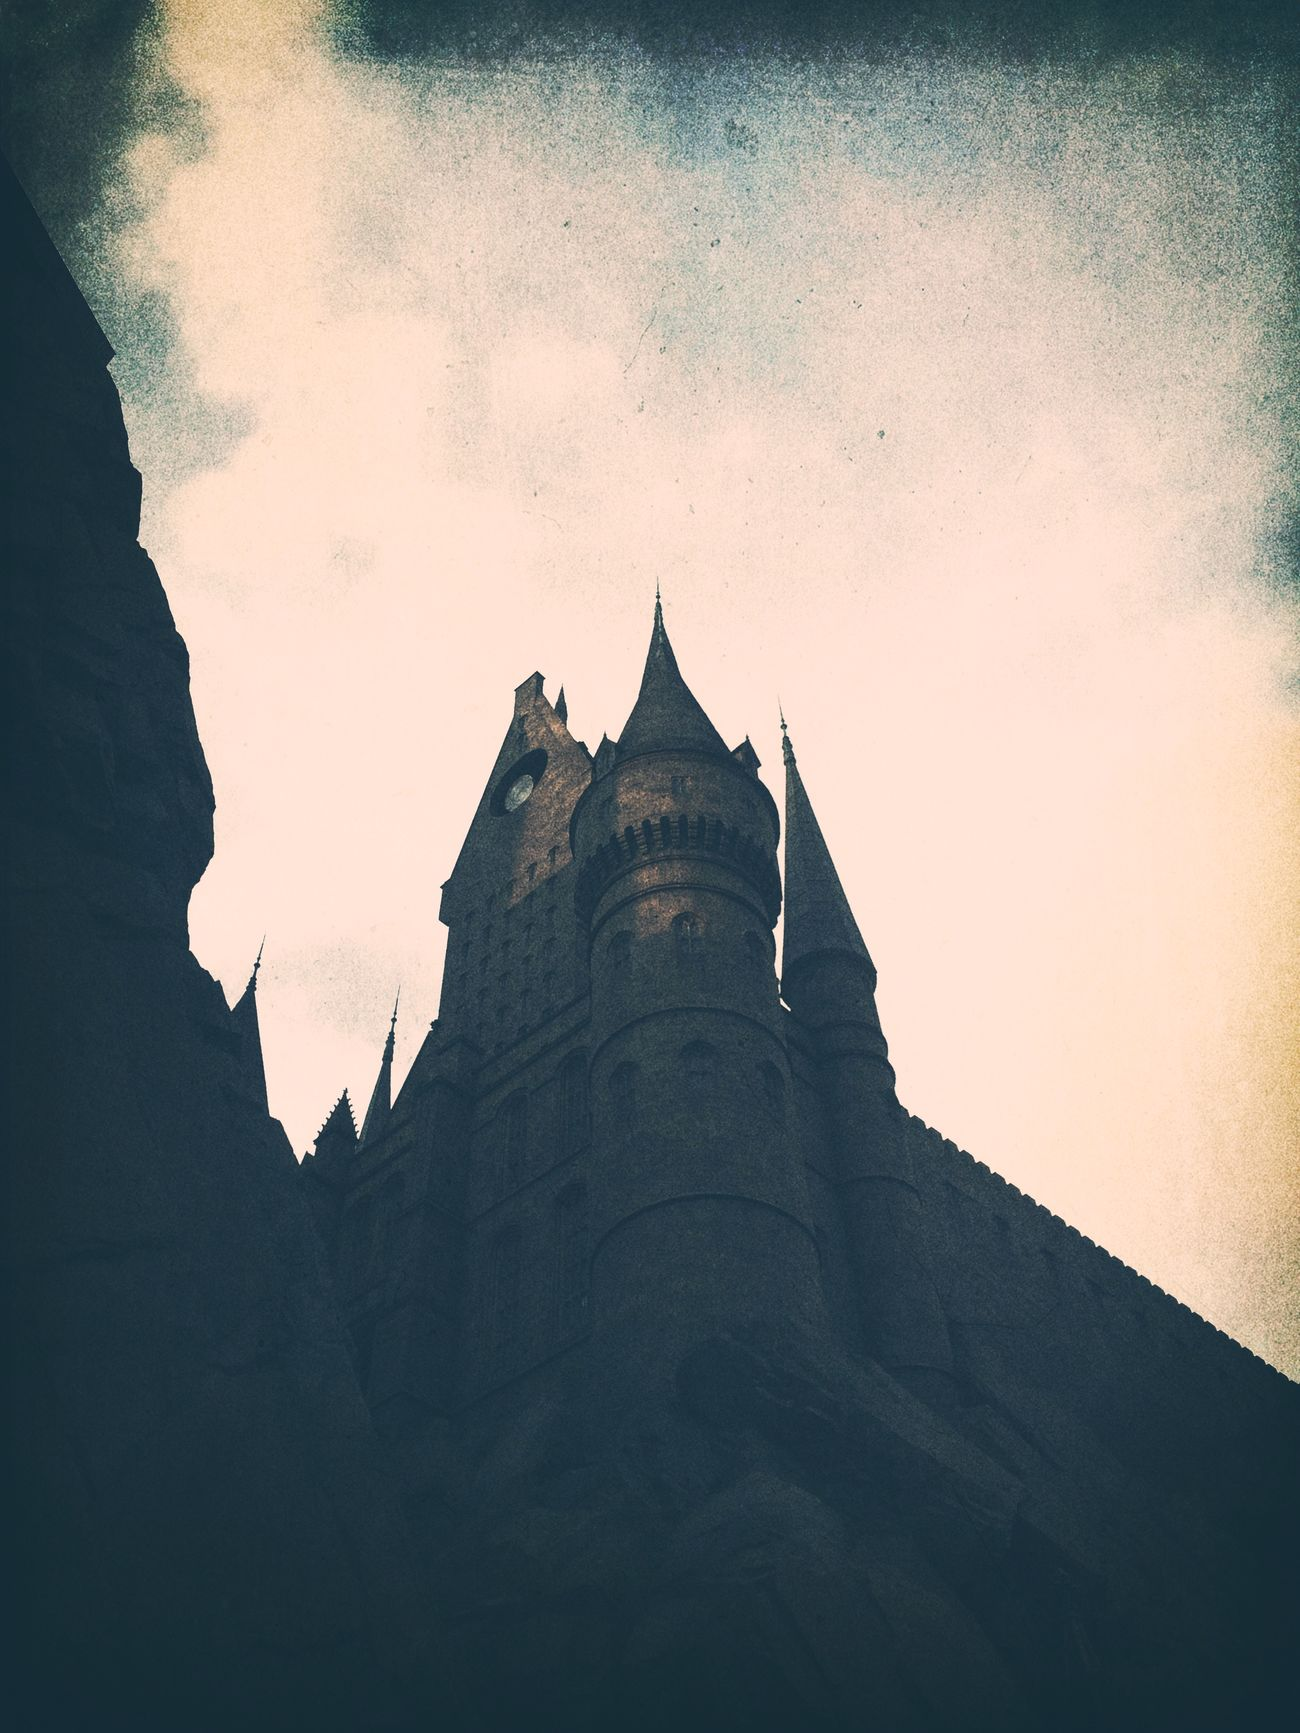 We've all got both light and dark inside us. What matters is the part we choose to act on. That's who we really are. - J.K. Rowling(Harry Potter and the Order of the Phoenix) Harrypotter Hogwarts The Darkness Within EyeEm Best Edits Tadaa Community Winter Wonderland